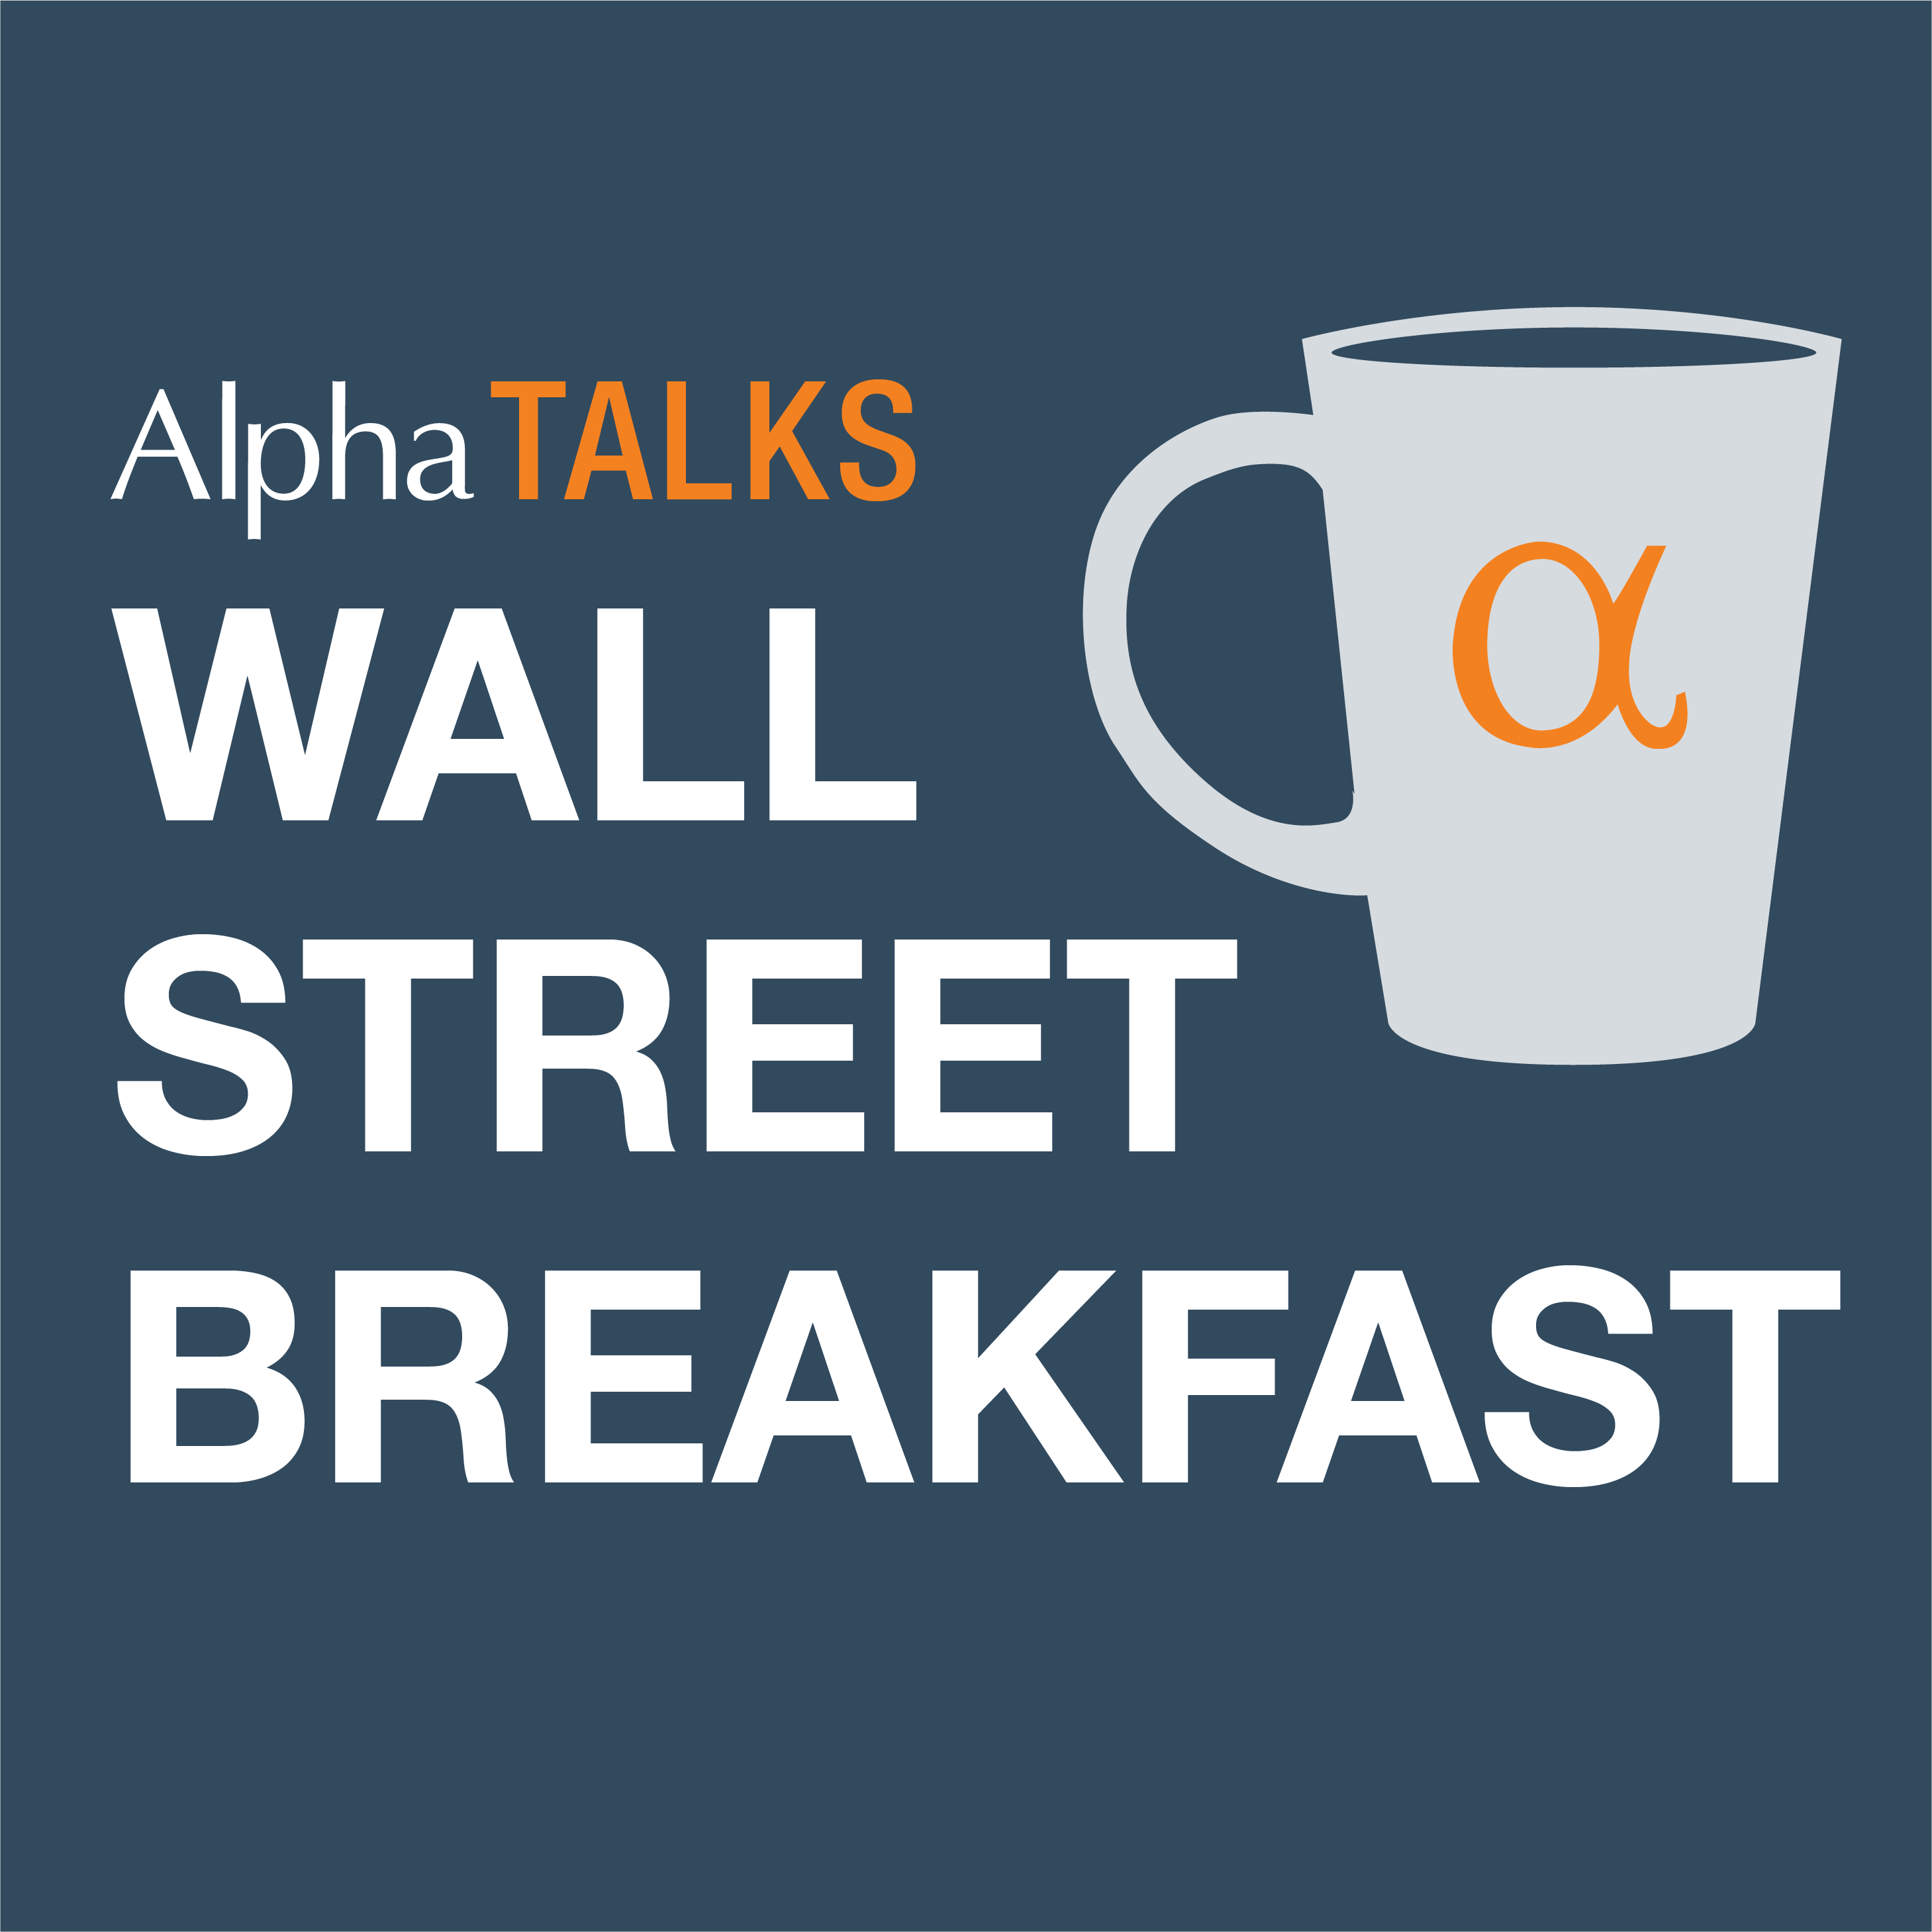 AlphaTALKS Wall Street Breakfast, May 1: What Moved Markets This Week